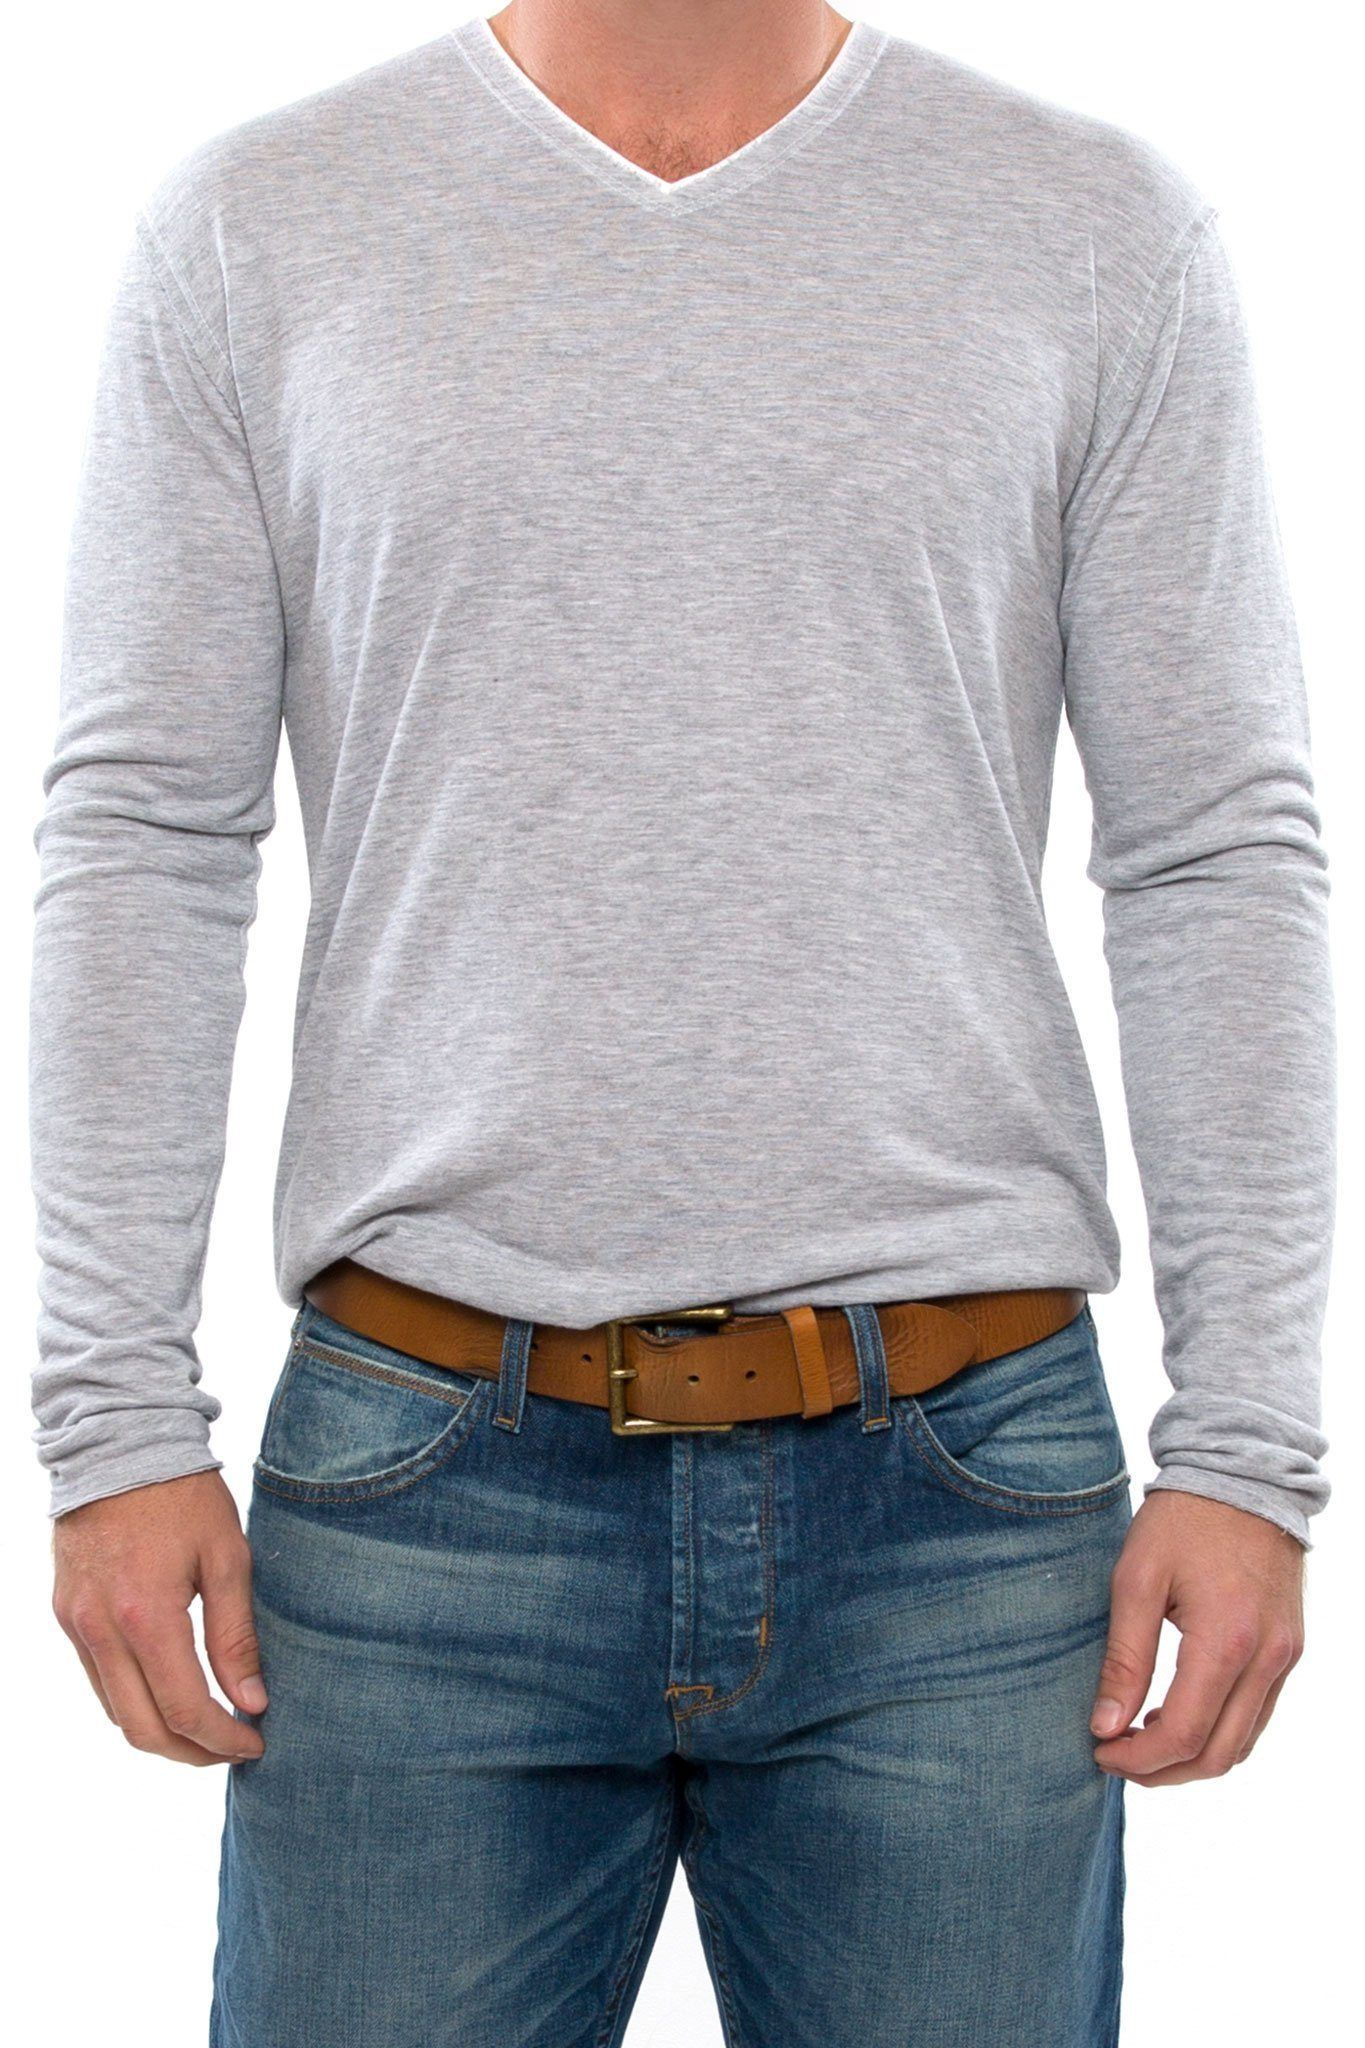 Raw Edge Long Sleeve V-Neck Shirt - Optic White - Shore